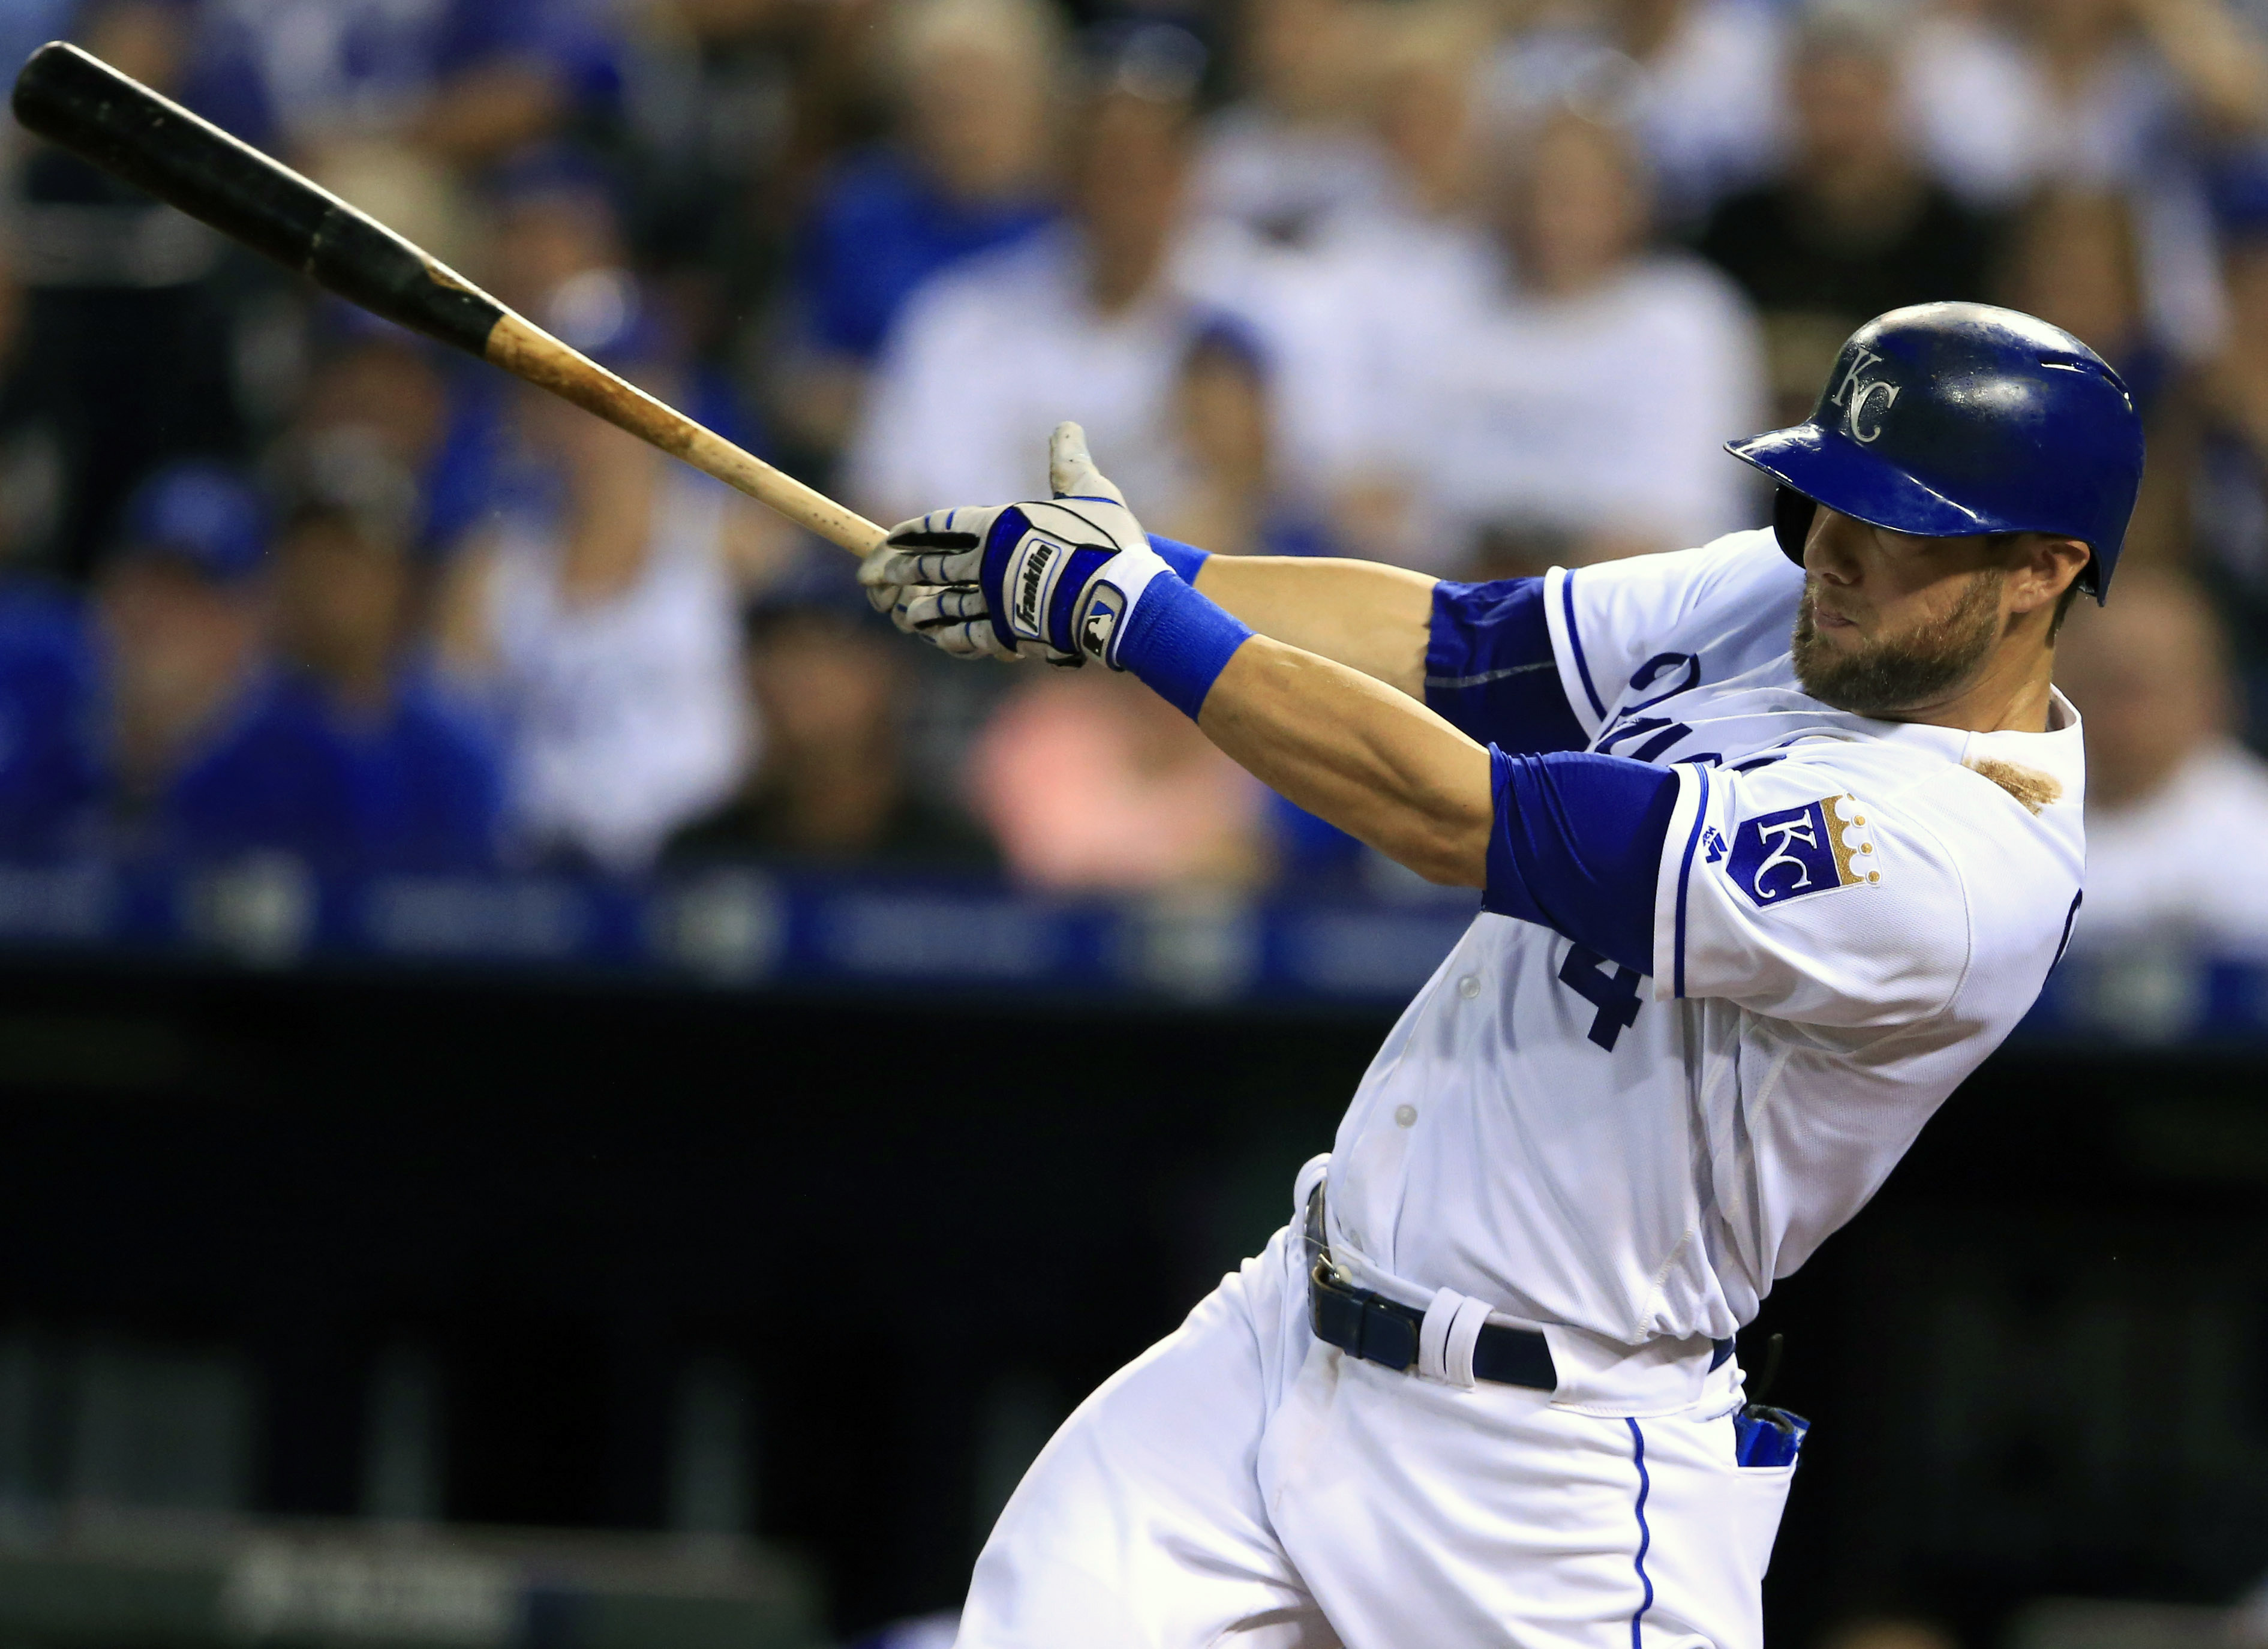 Kansas City Royals' Alex Gordon hits a grand slam off Minnesota Twins starting pitcher Tyler Duffey during the fourth inning of a baseball game at Kauffman Stadium in Kansas City, Mo., Thursday, Aug. 18, 2016. (AP Photo/Orlin Wagner)